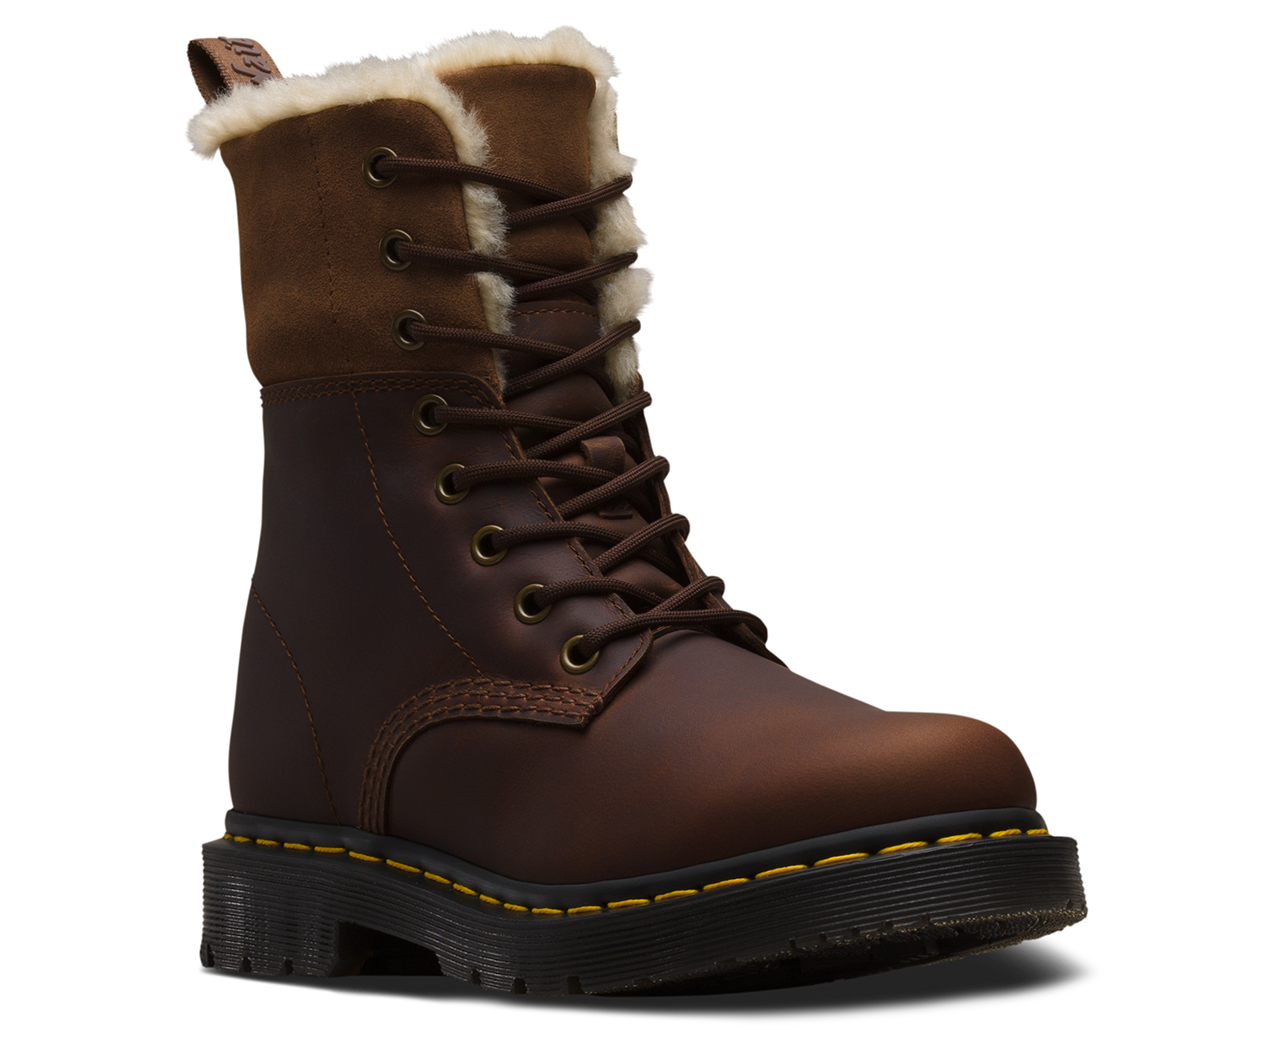 KOLBERT WINTERGRIPDM's 1460 ShoesDr DM'S Wintergrip Bootsamp; W9DHYE2I